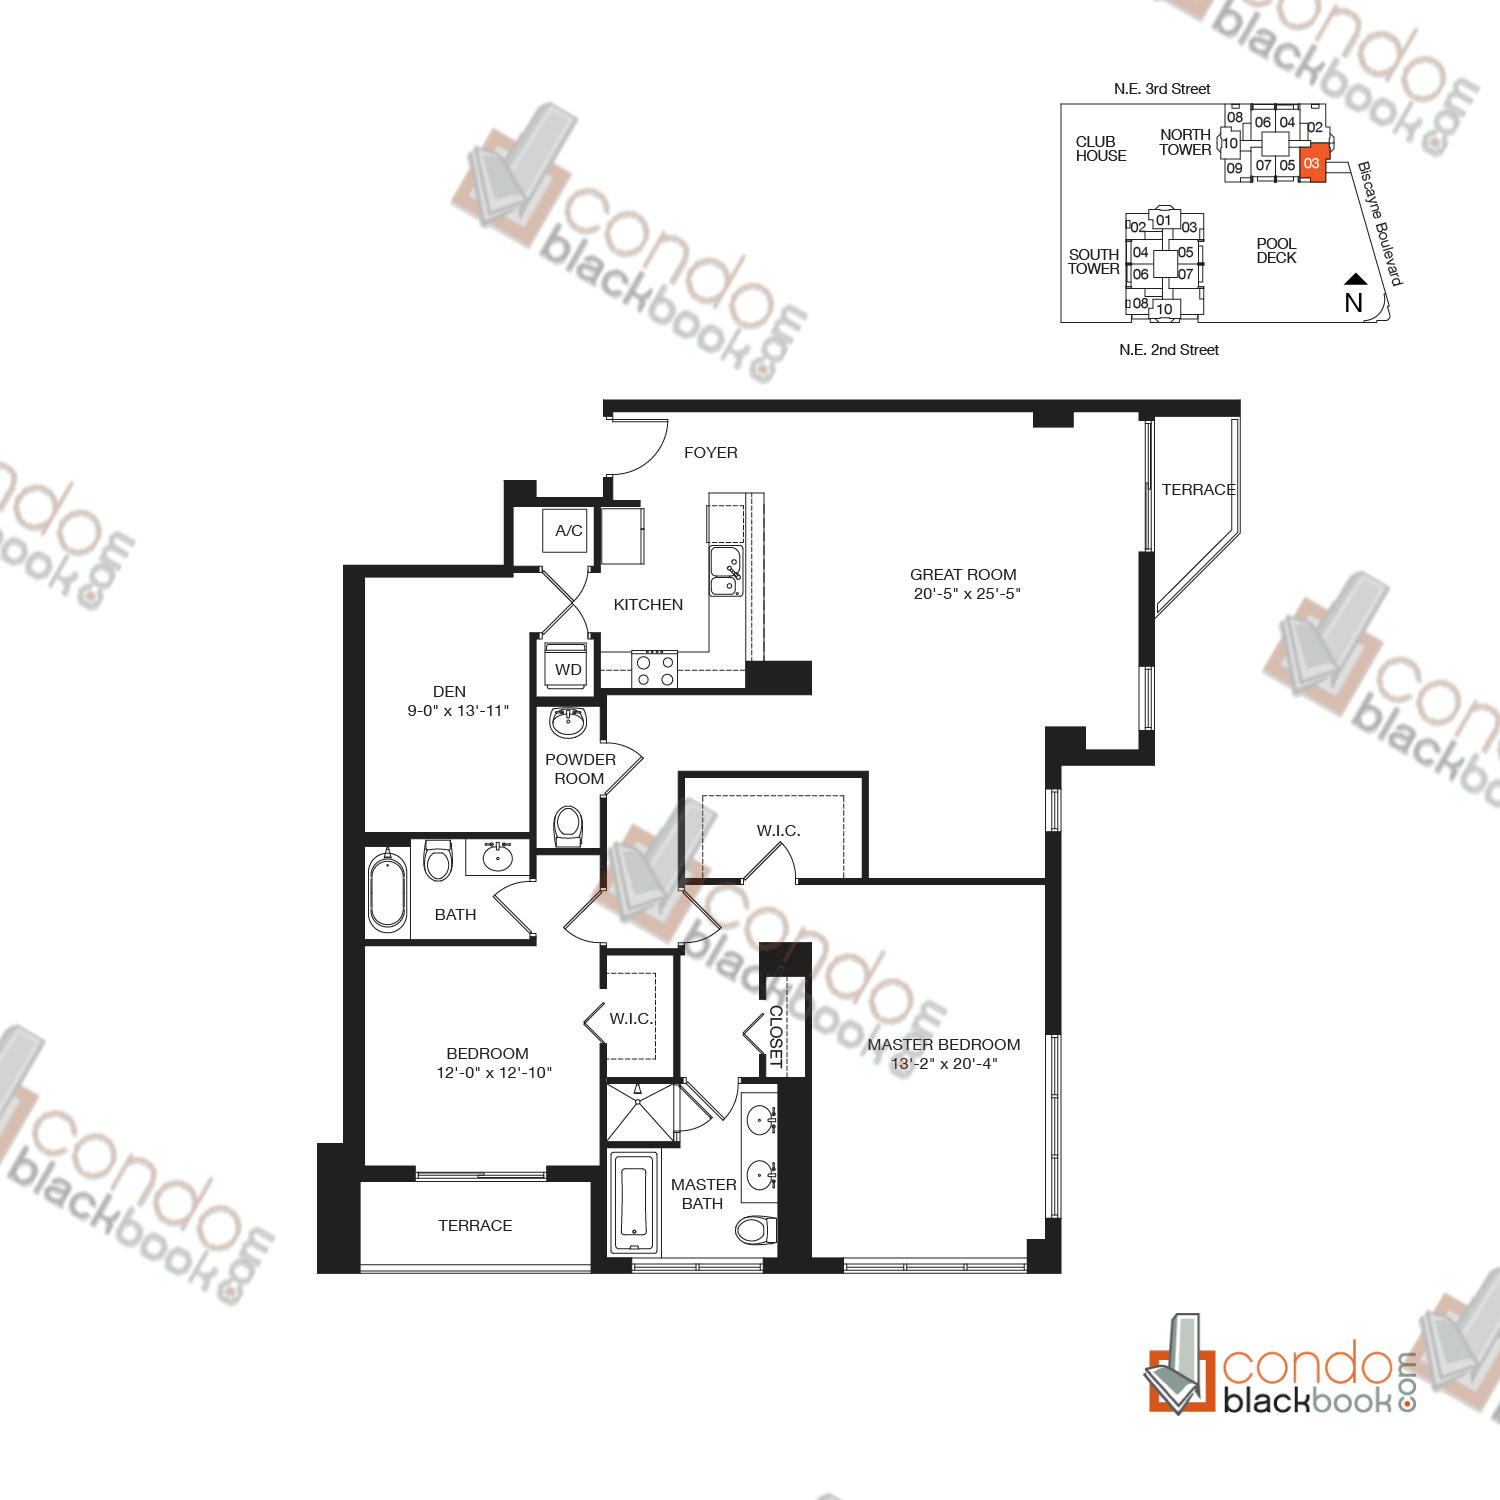 Floor plan for Vizcayne Downtown Miami Miami, model RESIDENCE 13, line 03, 2/2.5+DEN bedrooms, 1,741 sq ft